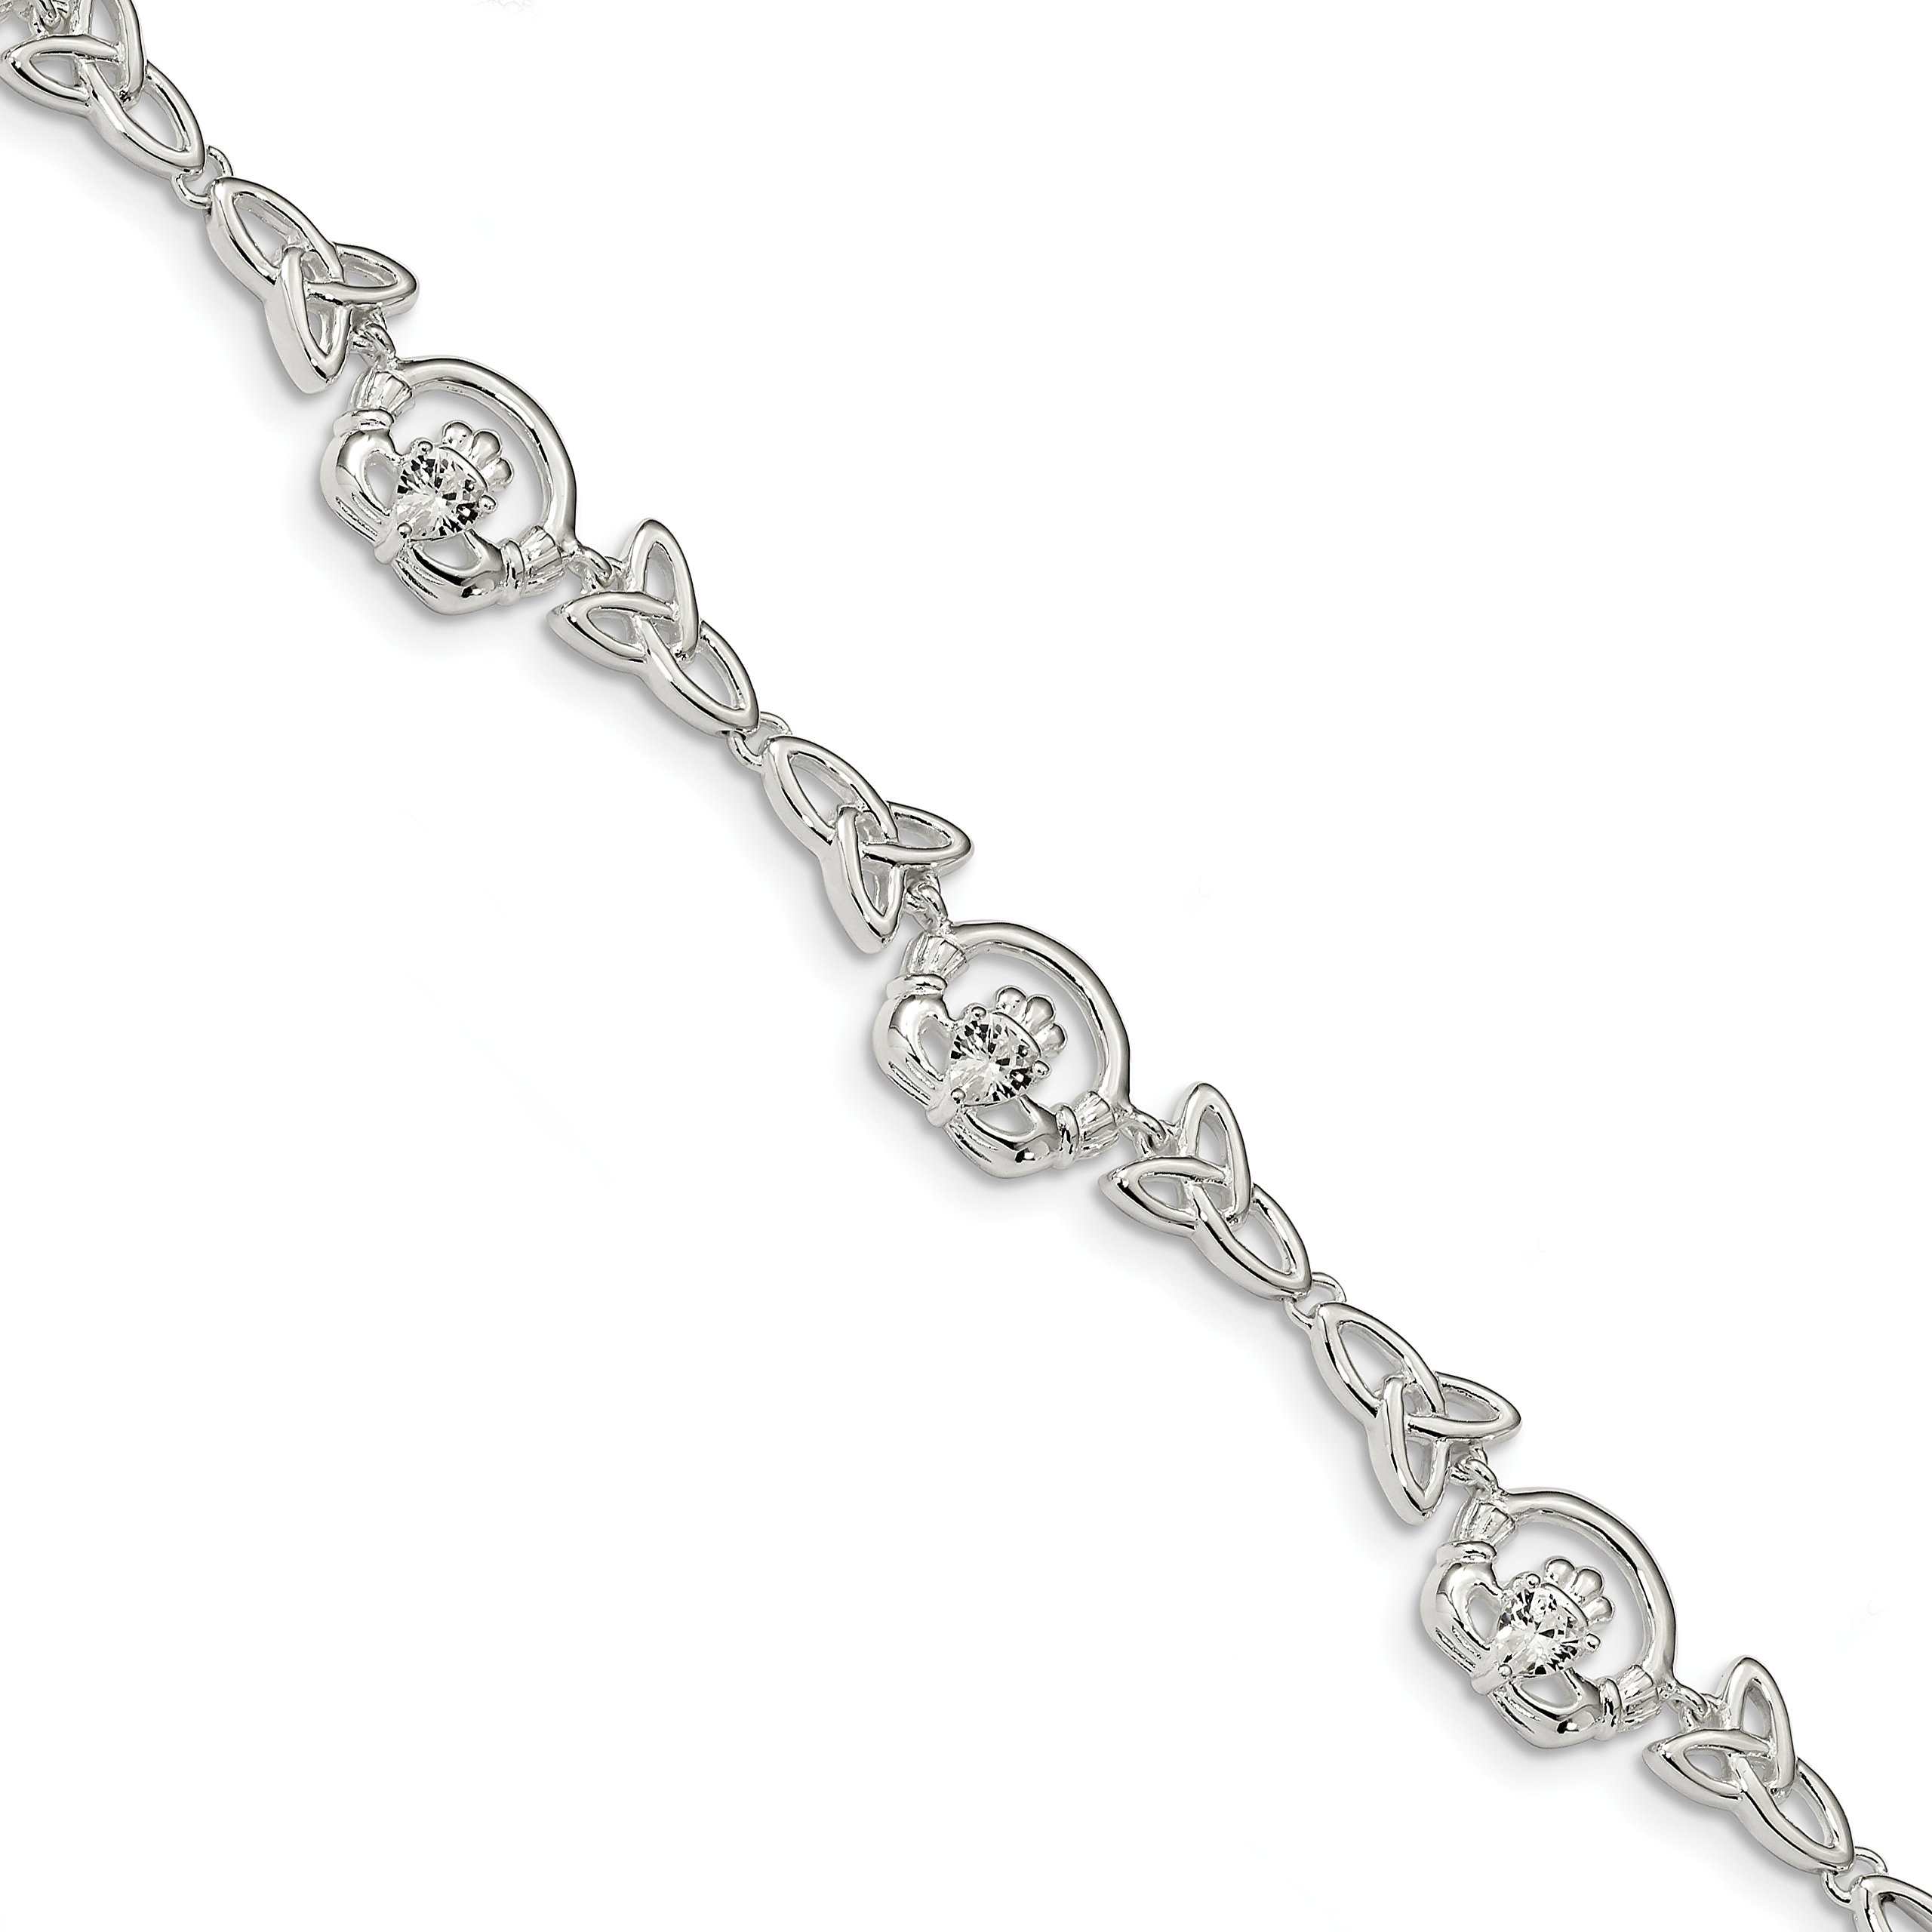 ICE CARATS 925 Sterling Silver Cubic Zirconia Cz Clauddagh/trinity Symbol Link Bracelet 7 Inch Celtic Claddagh Fine Jewelry Gift Set For Women Heart by ICE CARATS (Image #1)